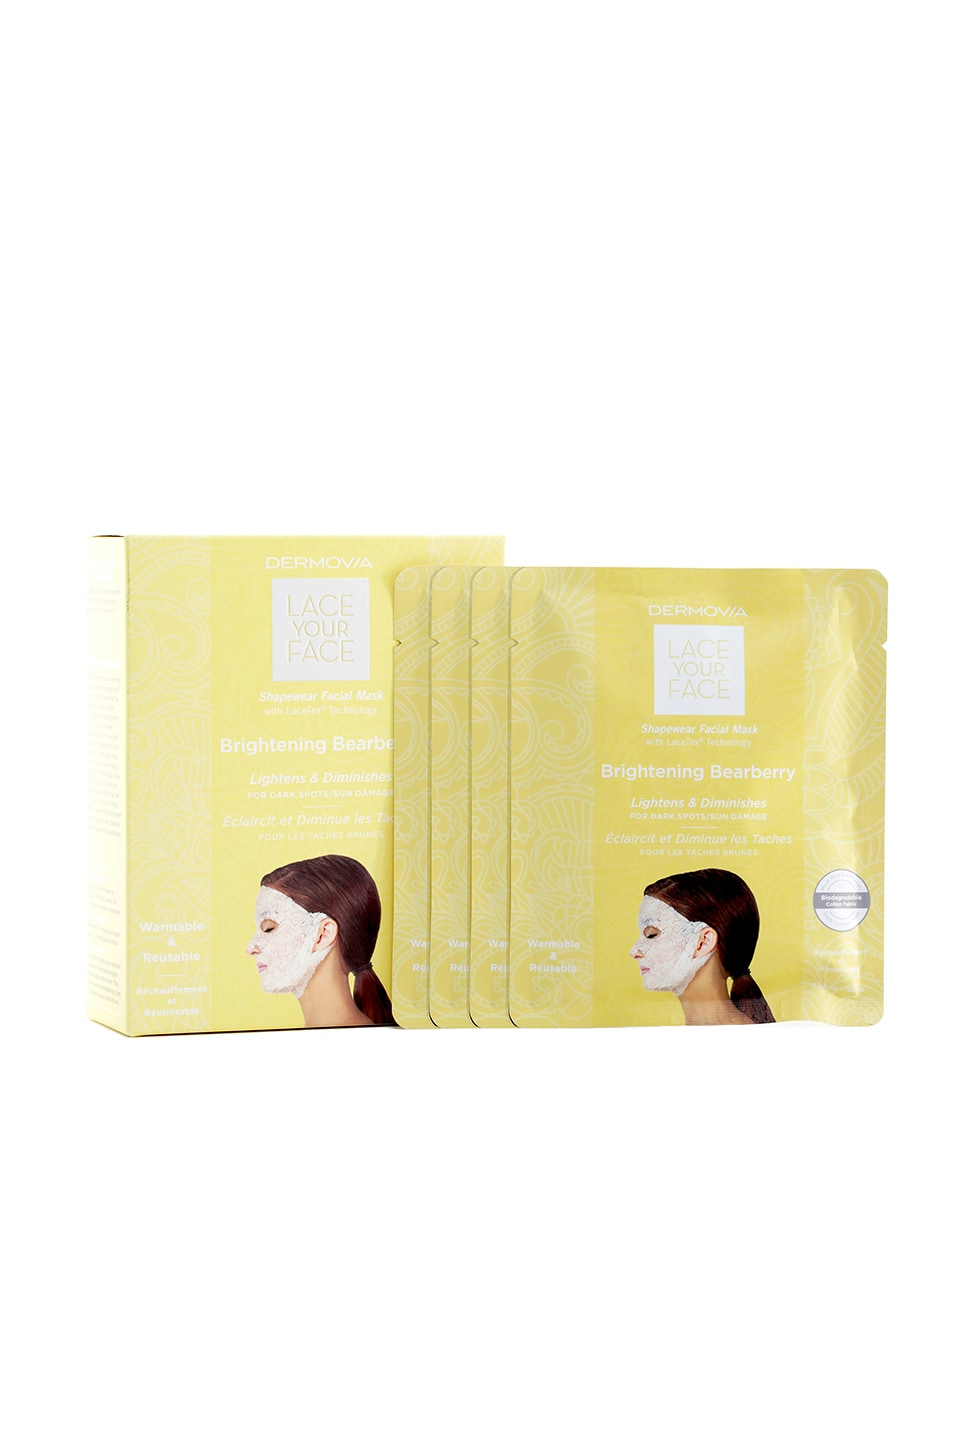 Dermovia Brightening Bearberry Lace Your Face Mask 4 Pack